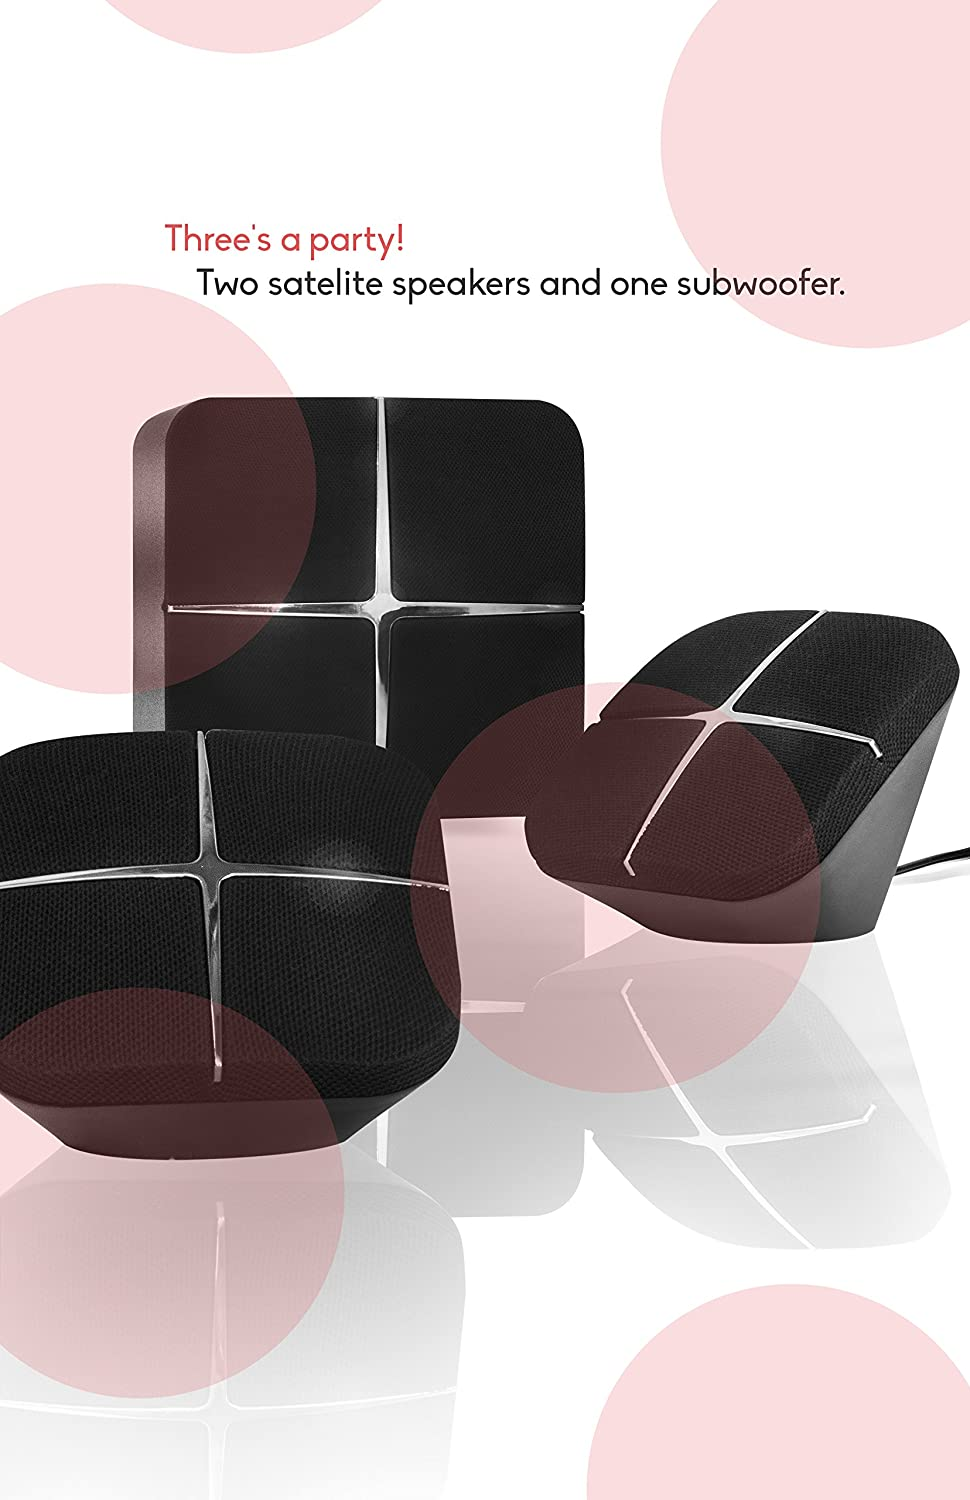 81gtPh%2BmEvL._SL1500_ amazon com sharper image sbt2003bk 2 1 speakers with subwoofer  at reclaimingppi.co